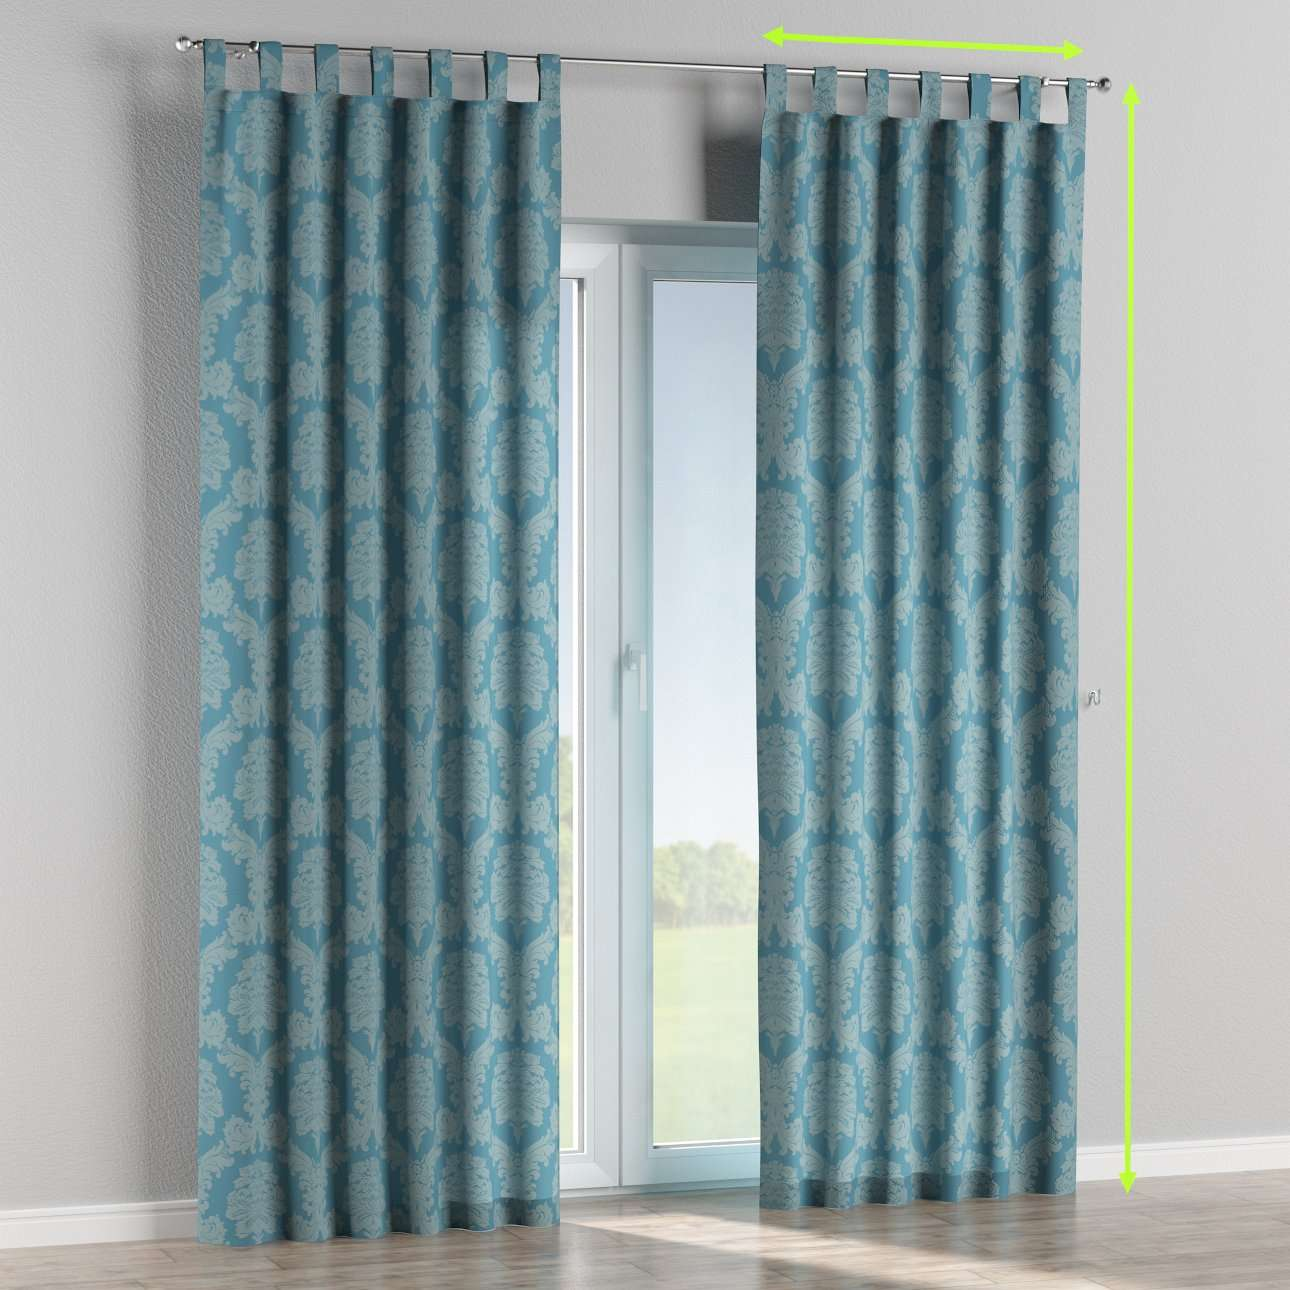 Tab top lined curtains in collection Damasco, fabric: 613-67